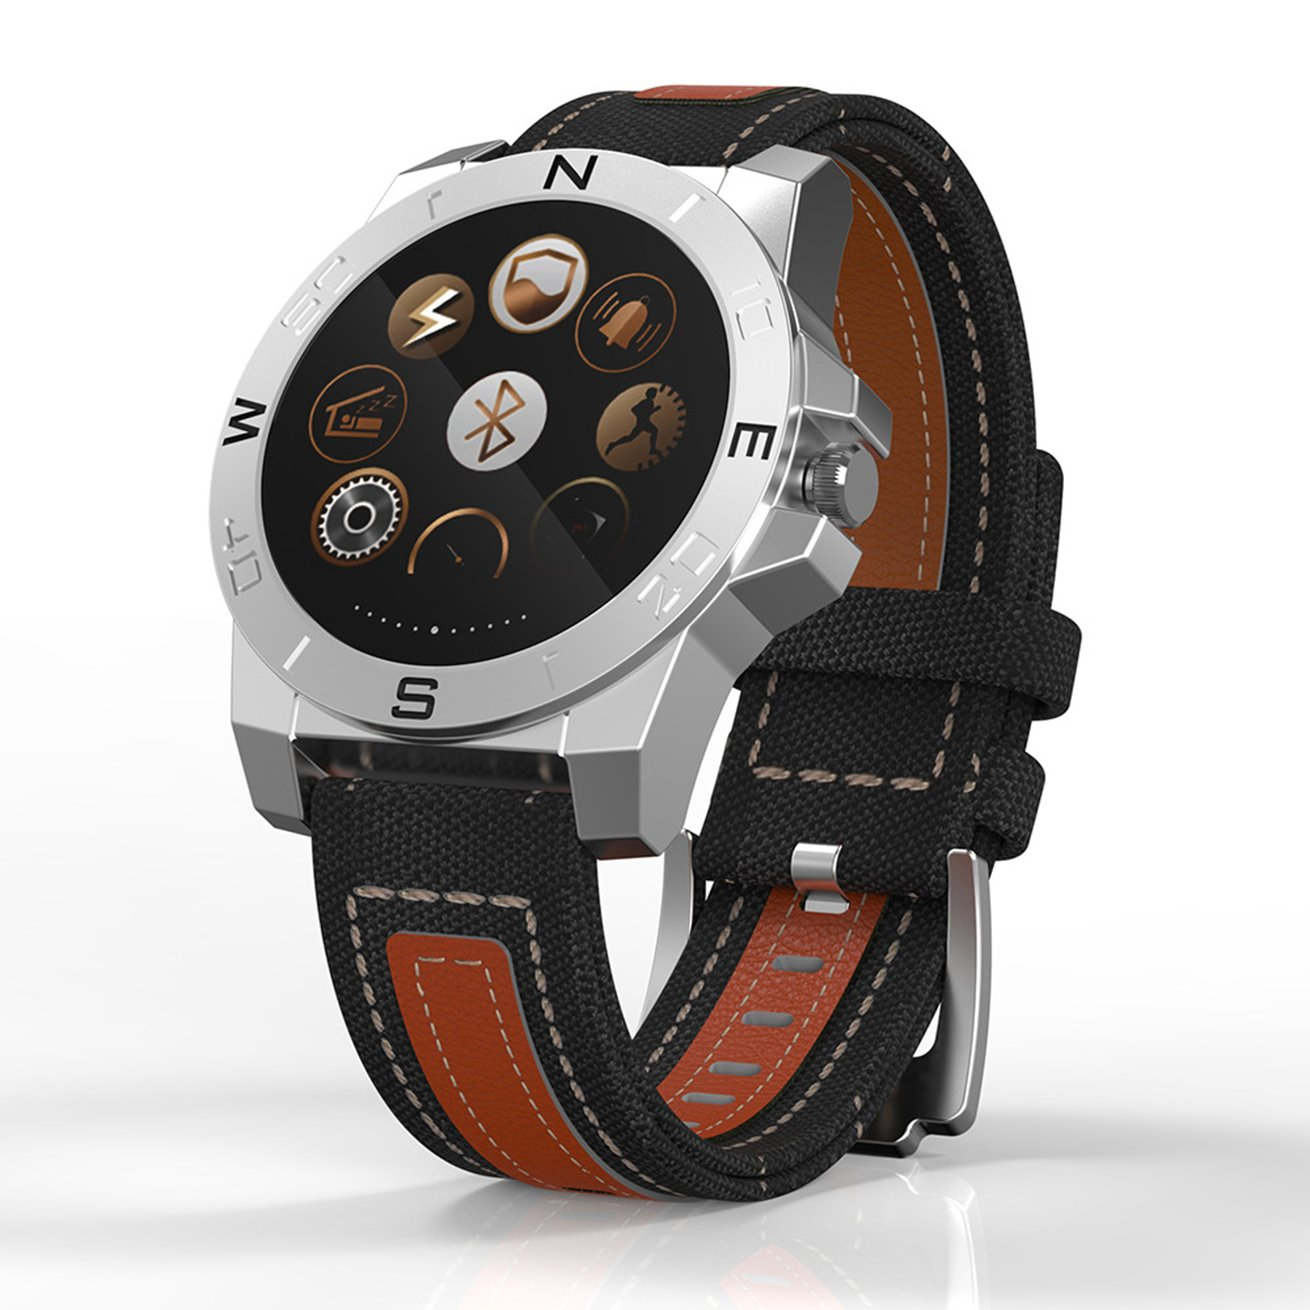 Smartwatch Sumergibles Android Mujer Gps Reloj Inteligente ...